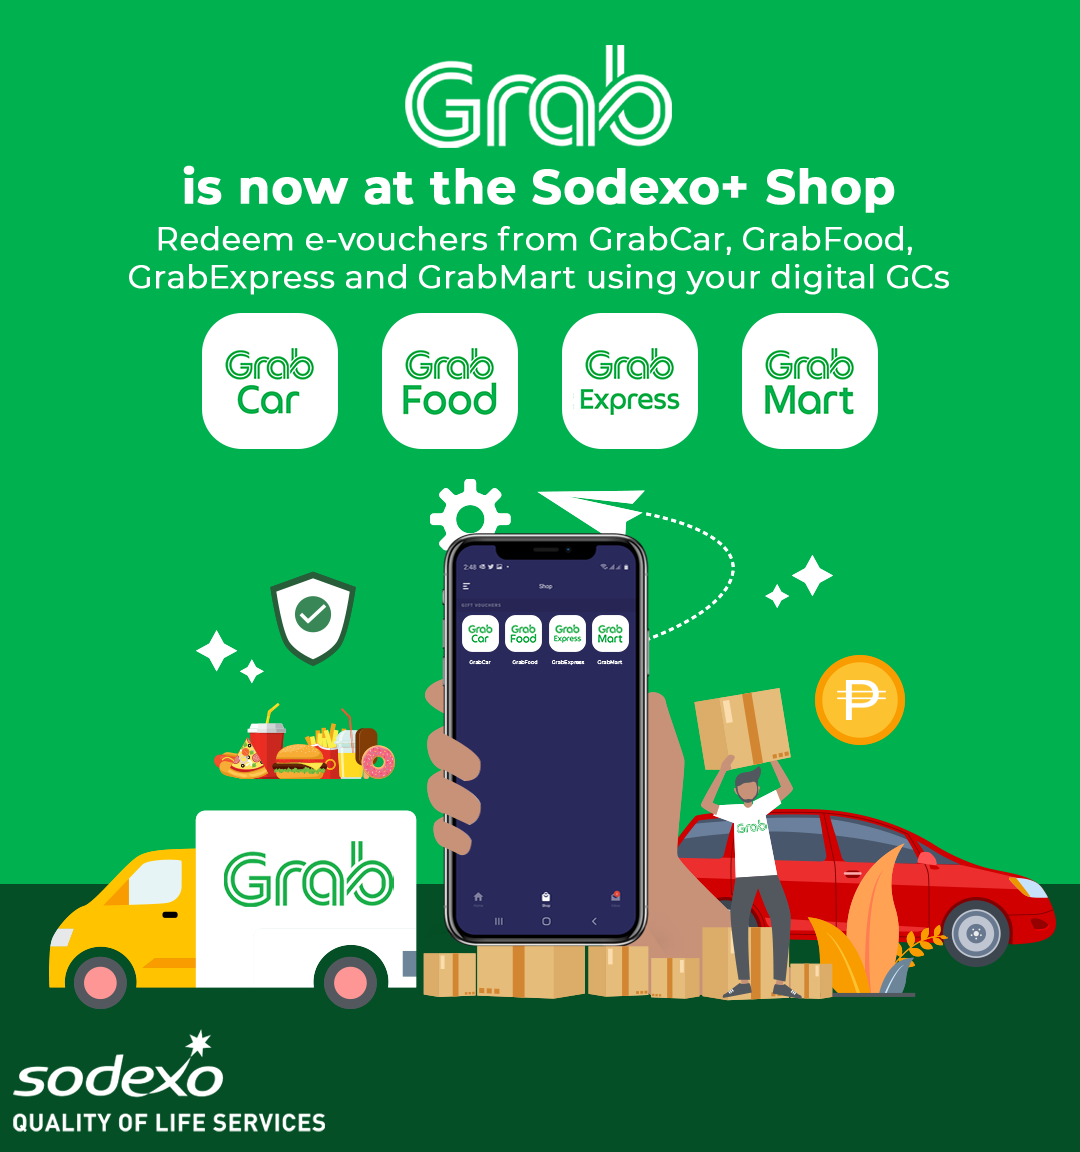 Grab is now at the Sodexo+ Shop